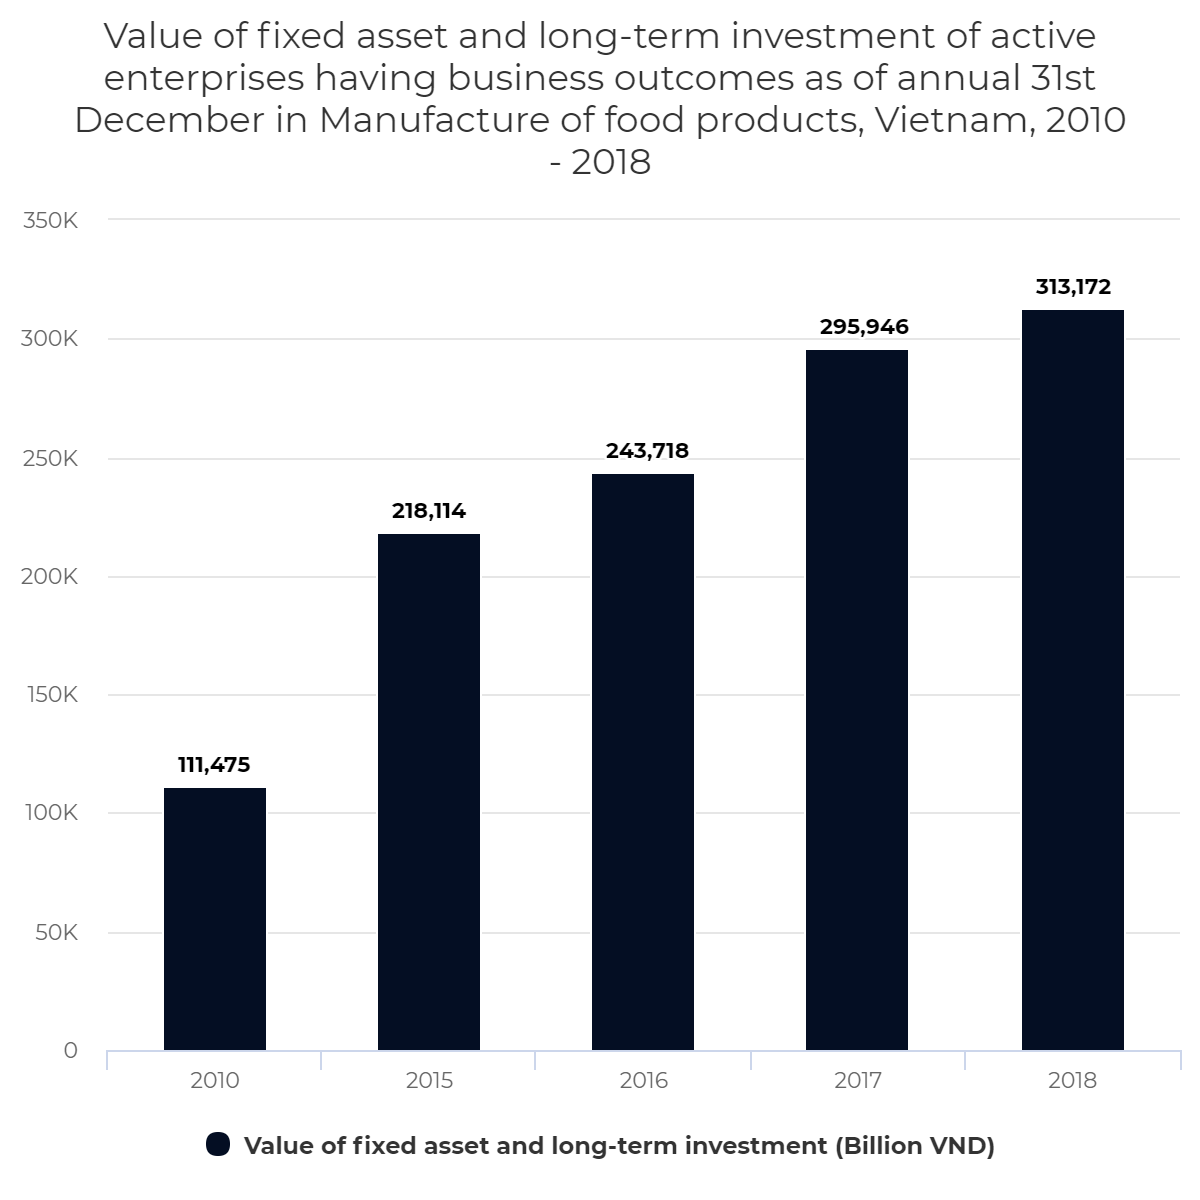 Value of fixed asset and long-term investment of active enterprises having business outcomes as of annual 31st December in Manufacture of food products, Vietnam, 2010 – 2018